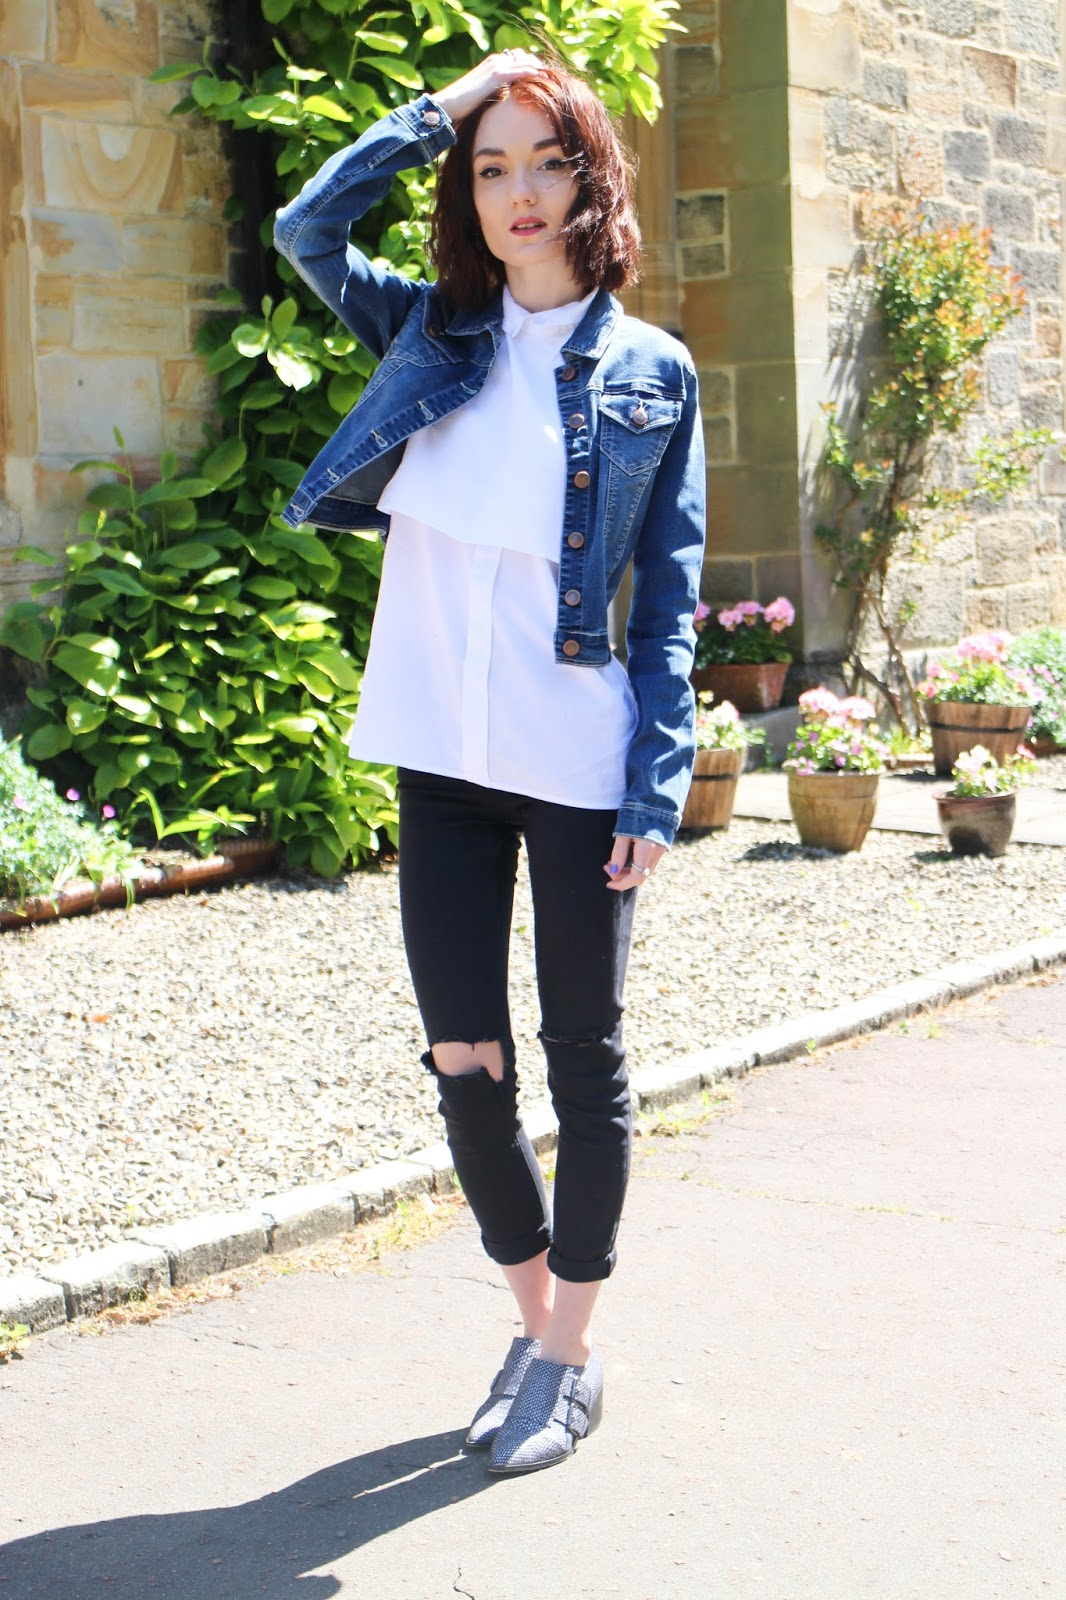 3f197077e30a  URBAN BLISS MID WASH CROPPED DENIM JACKET  C O EXHIBIT   LAYERED SHIRT   RIVER ISLAND   RIPPED SKINNY JEANS  TOPSHOP   POINTED SHOES  ASOS    DUFFLE  BAG  ...